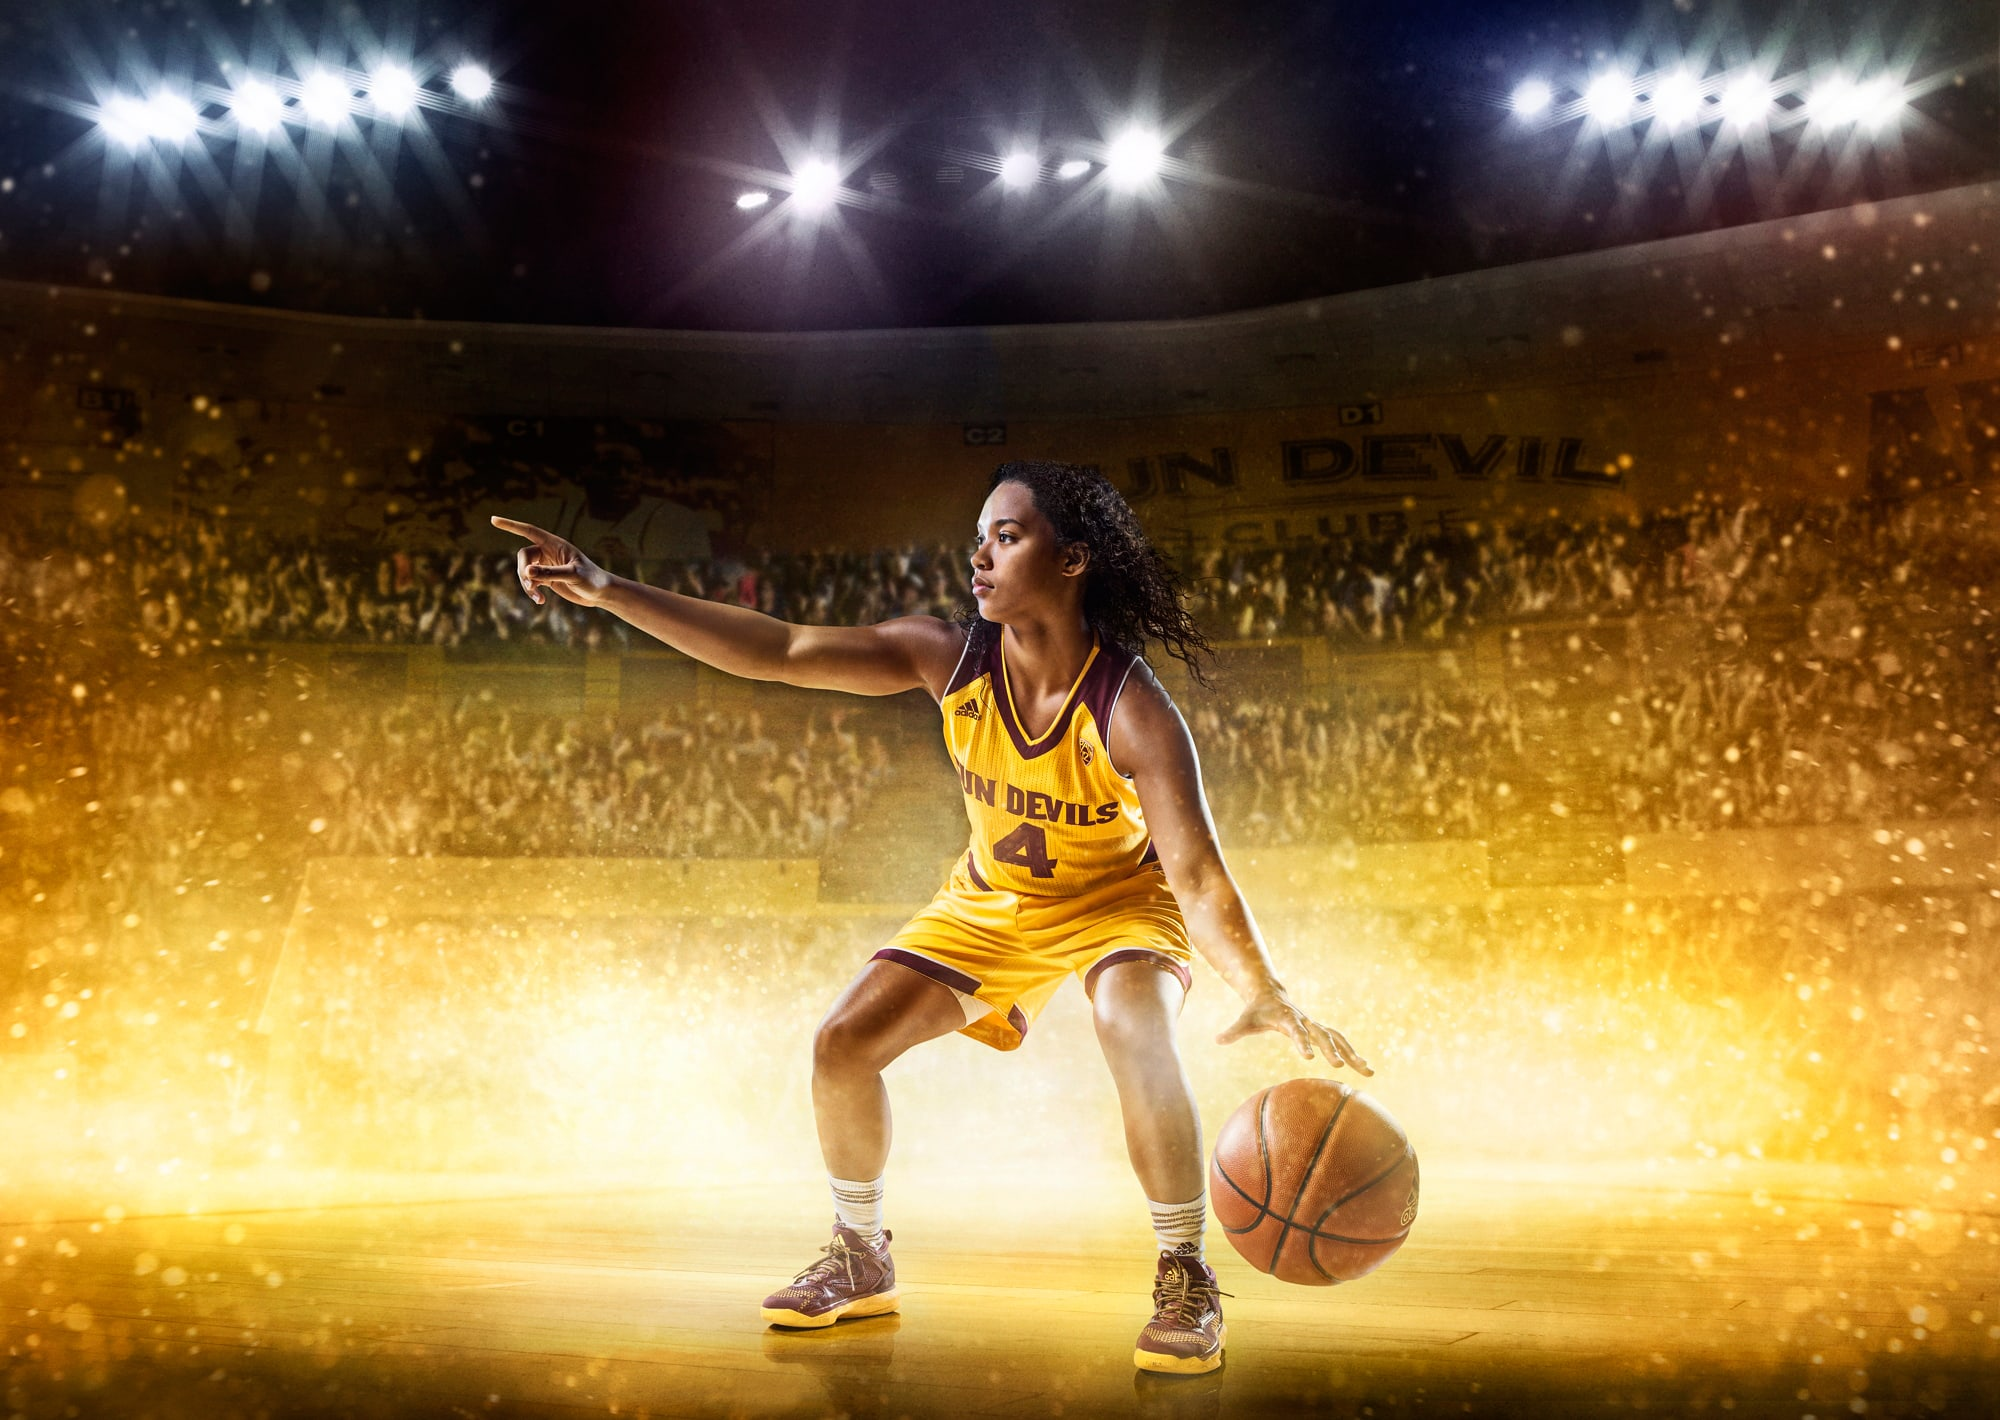 Conceptual Sports Photography Campaign